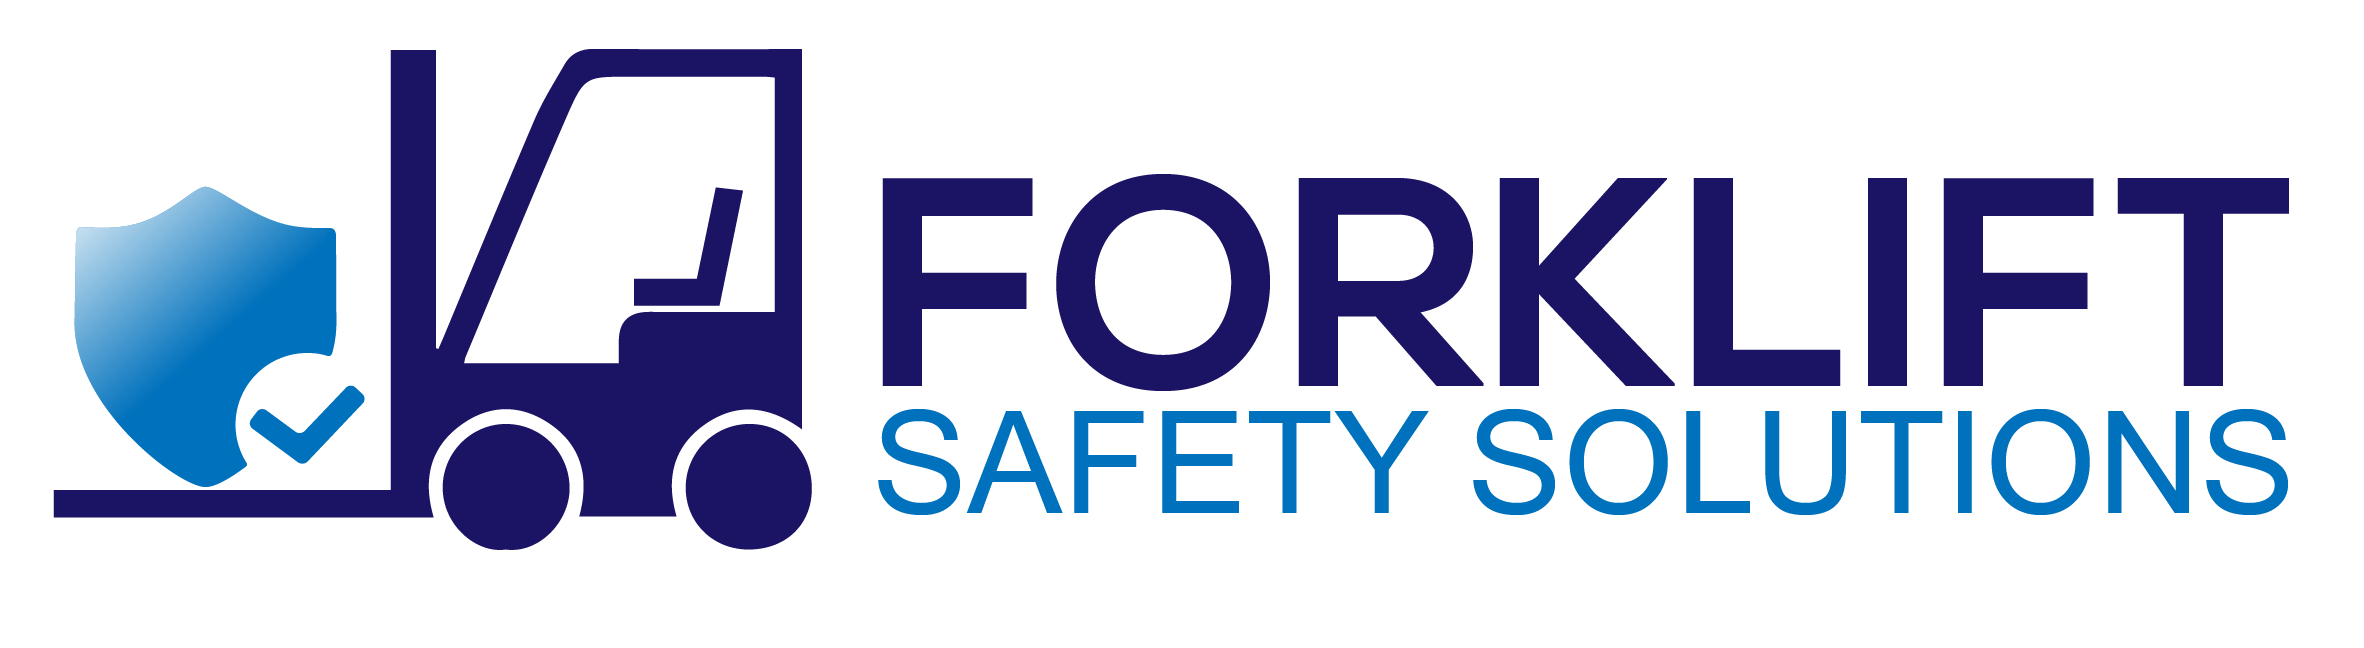 Forklift Safety Solutions Offers Forklift Safety Products and Remote Forklift Training to Ensure Safer Workplaces Nationwide